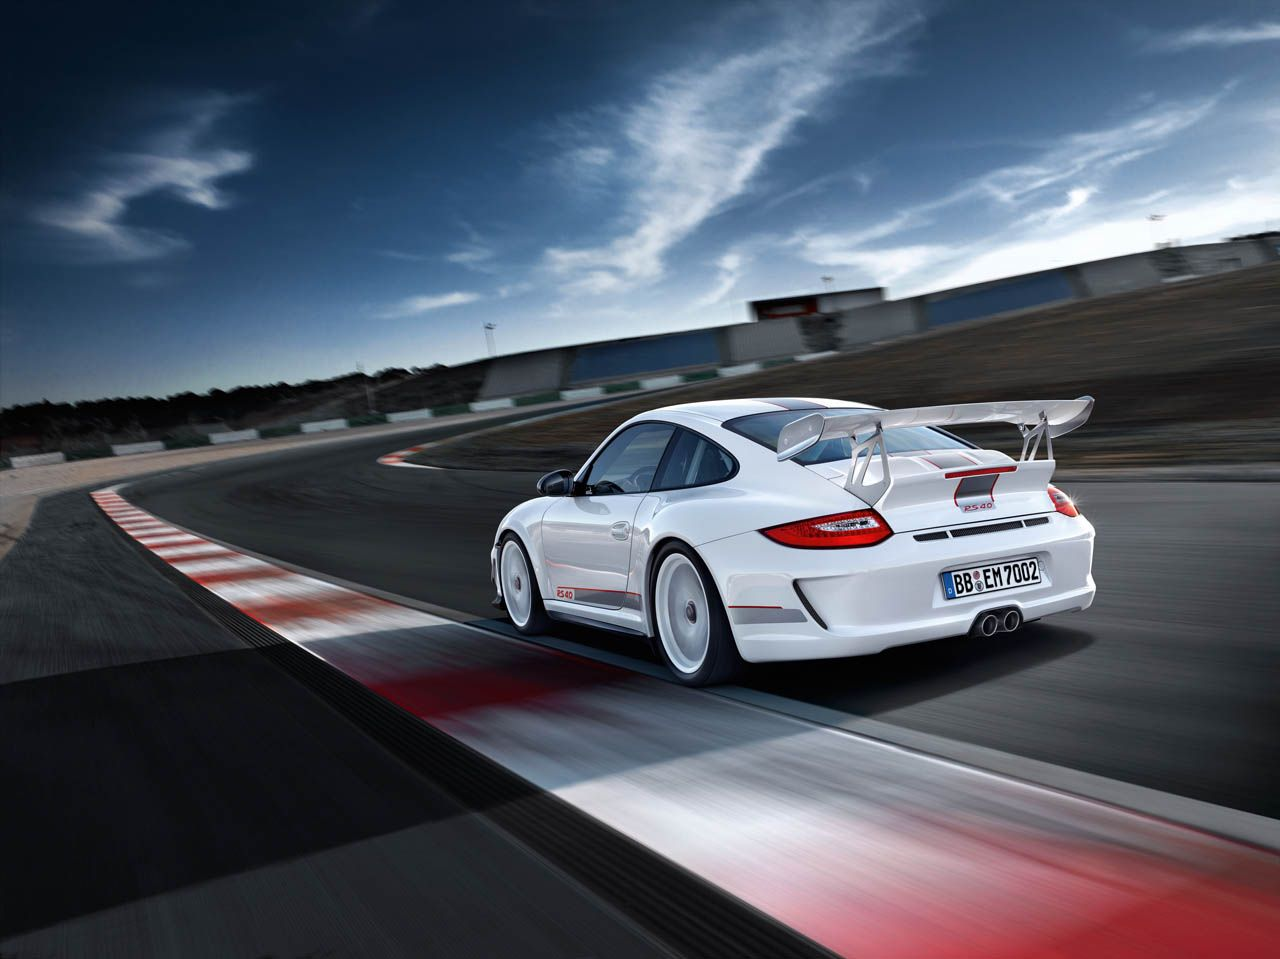 Porsche 911 gt3 rs 4 0 lateral trasera